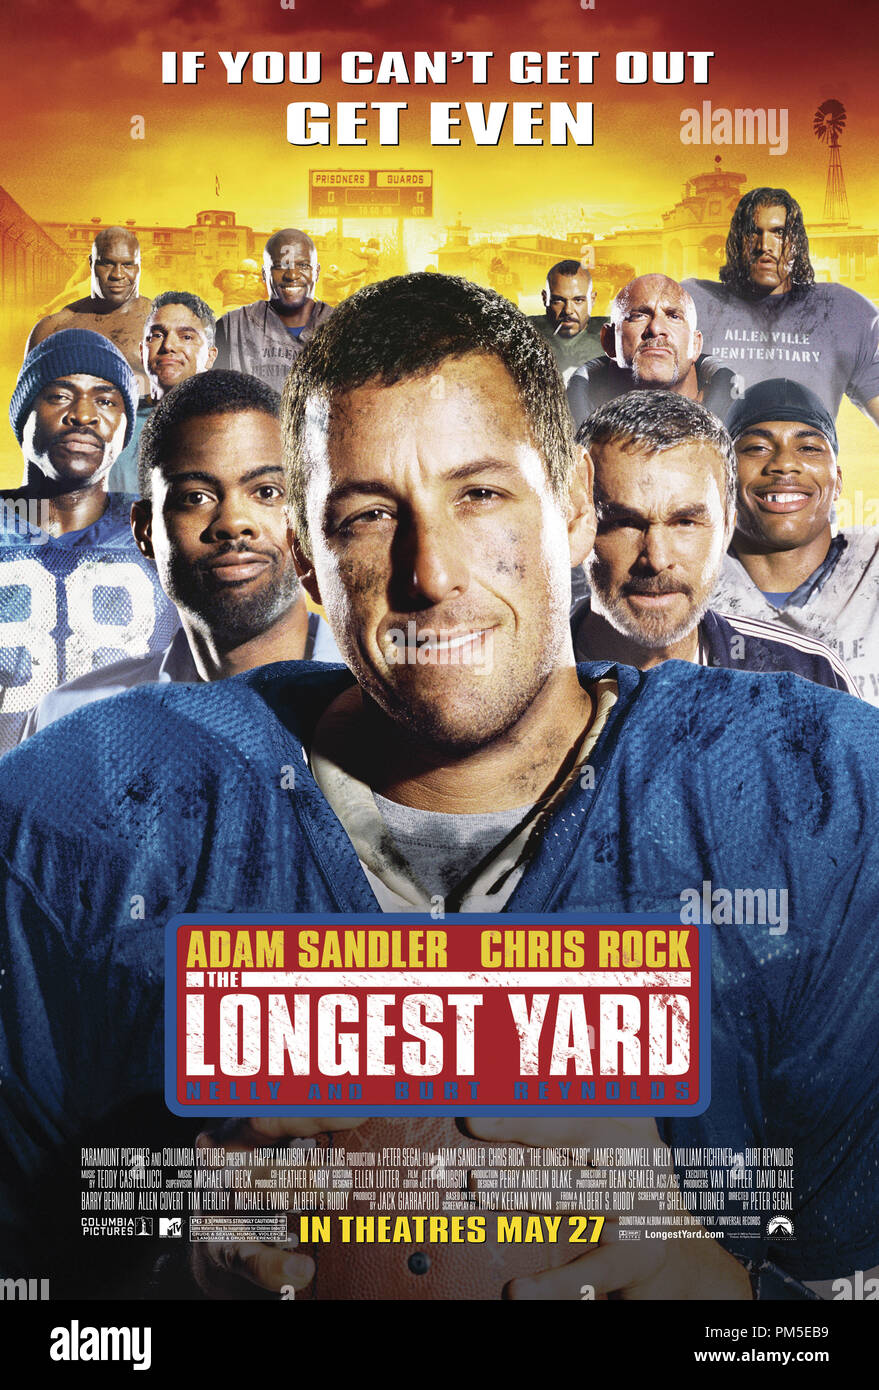 Poster Art from 'The Longest Yard' Poster © 2005 Paramount Pictures   File Reference # 30736878THA  For Editorial Use Only -  All Rights Reserved - Stock Image